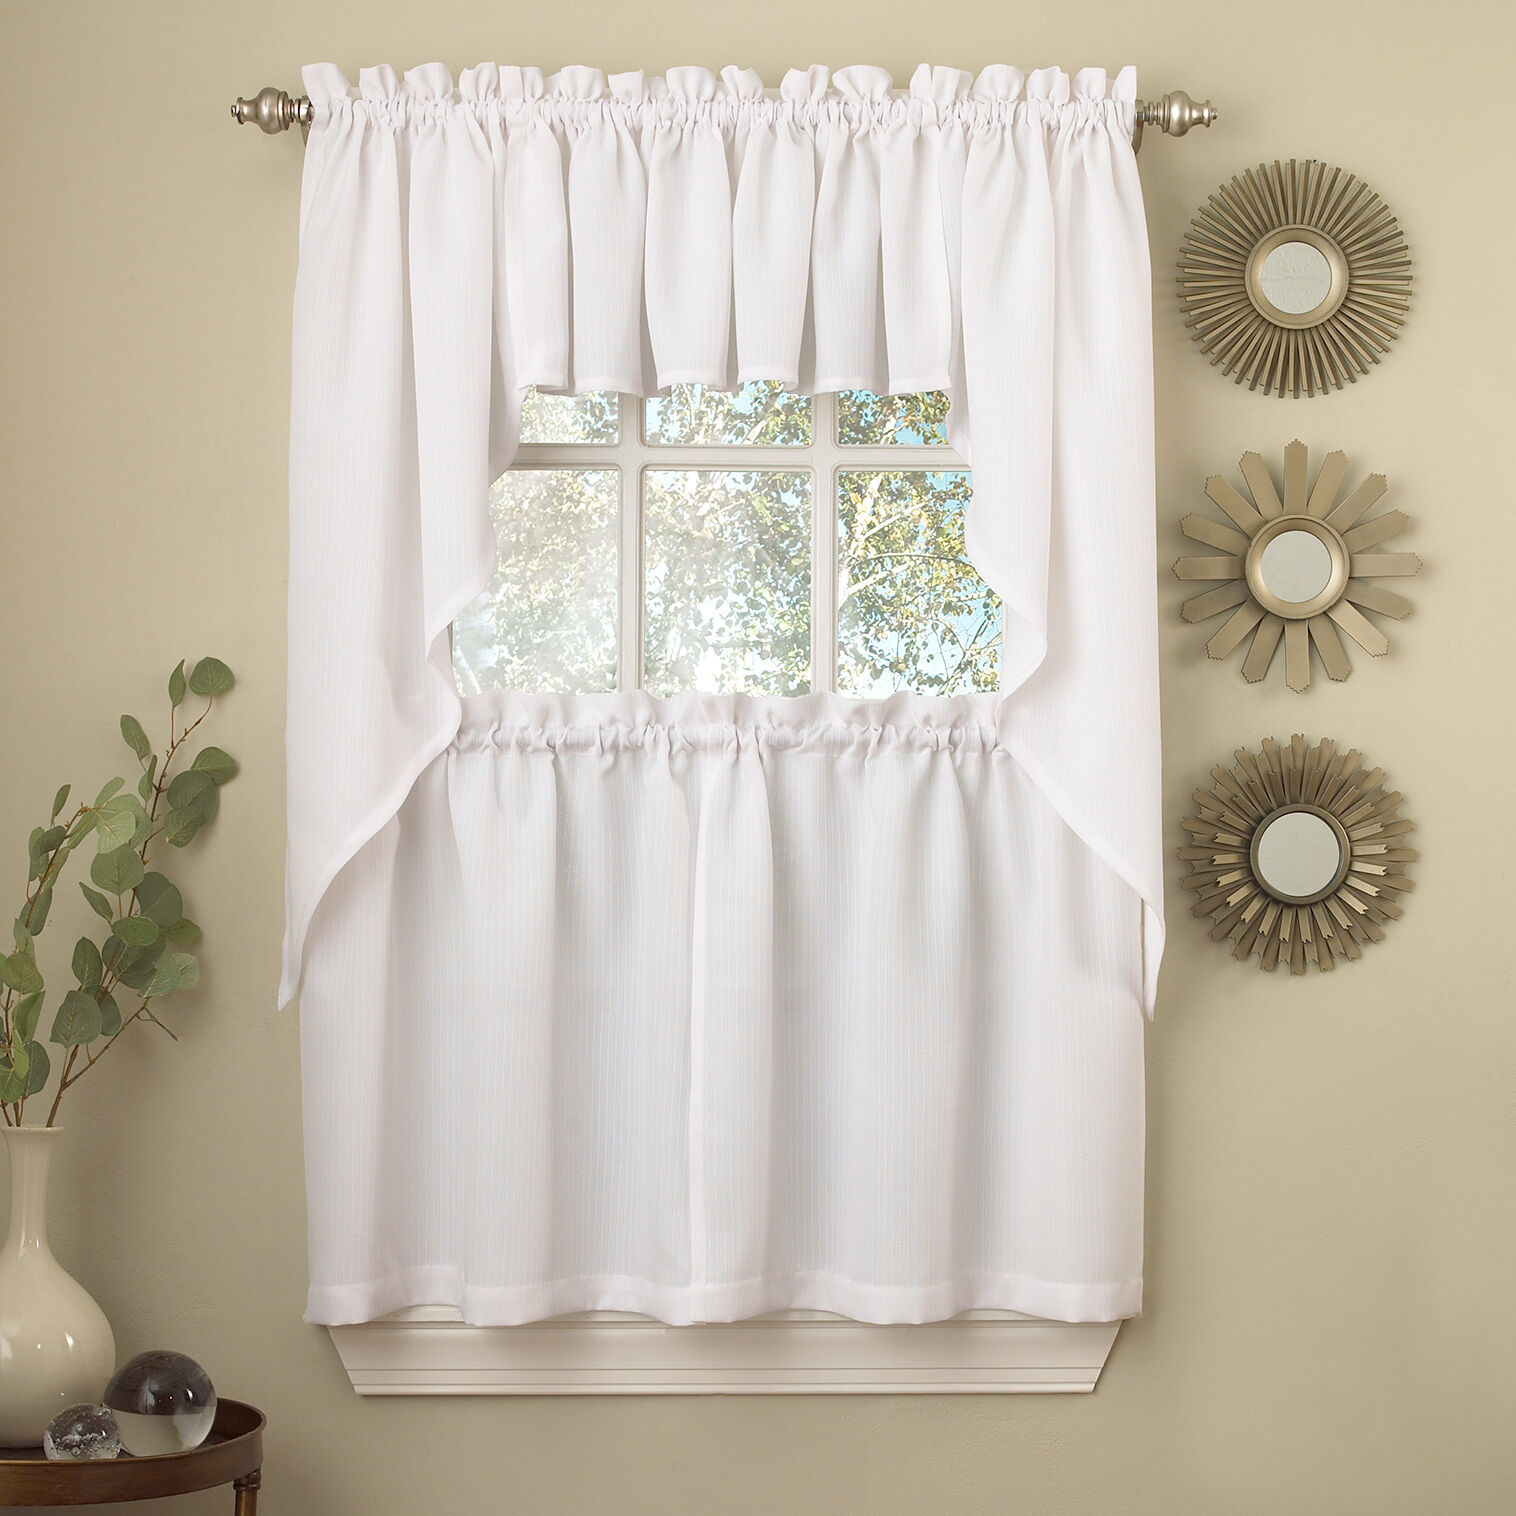 Primary image for White Solid Opaque Ribcord Kitchen Curtains - Choice of Tiers Valance or Swag